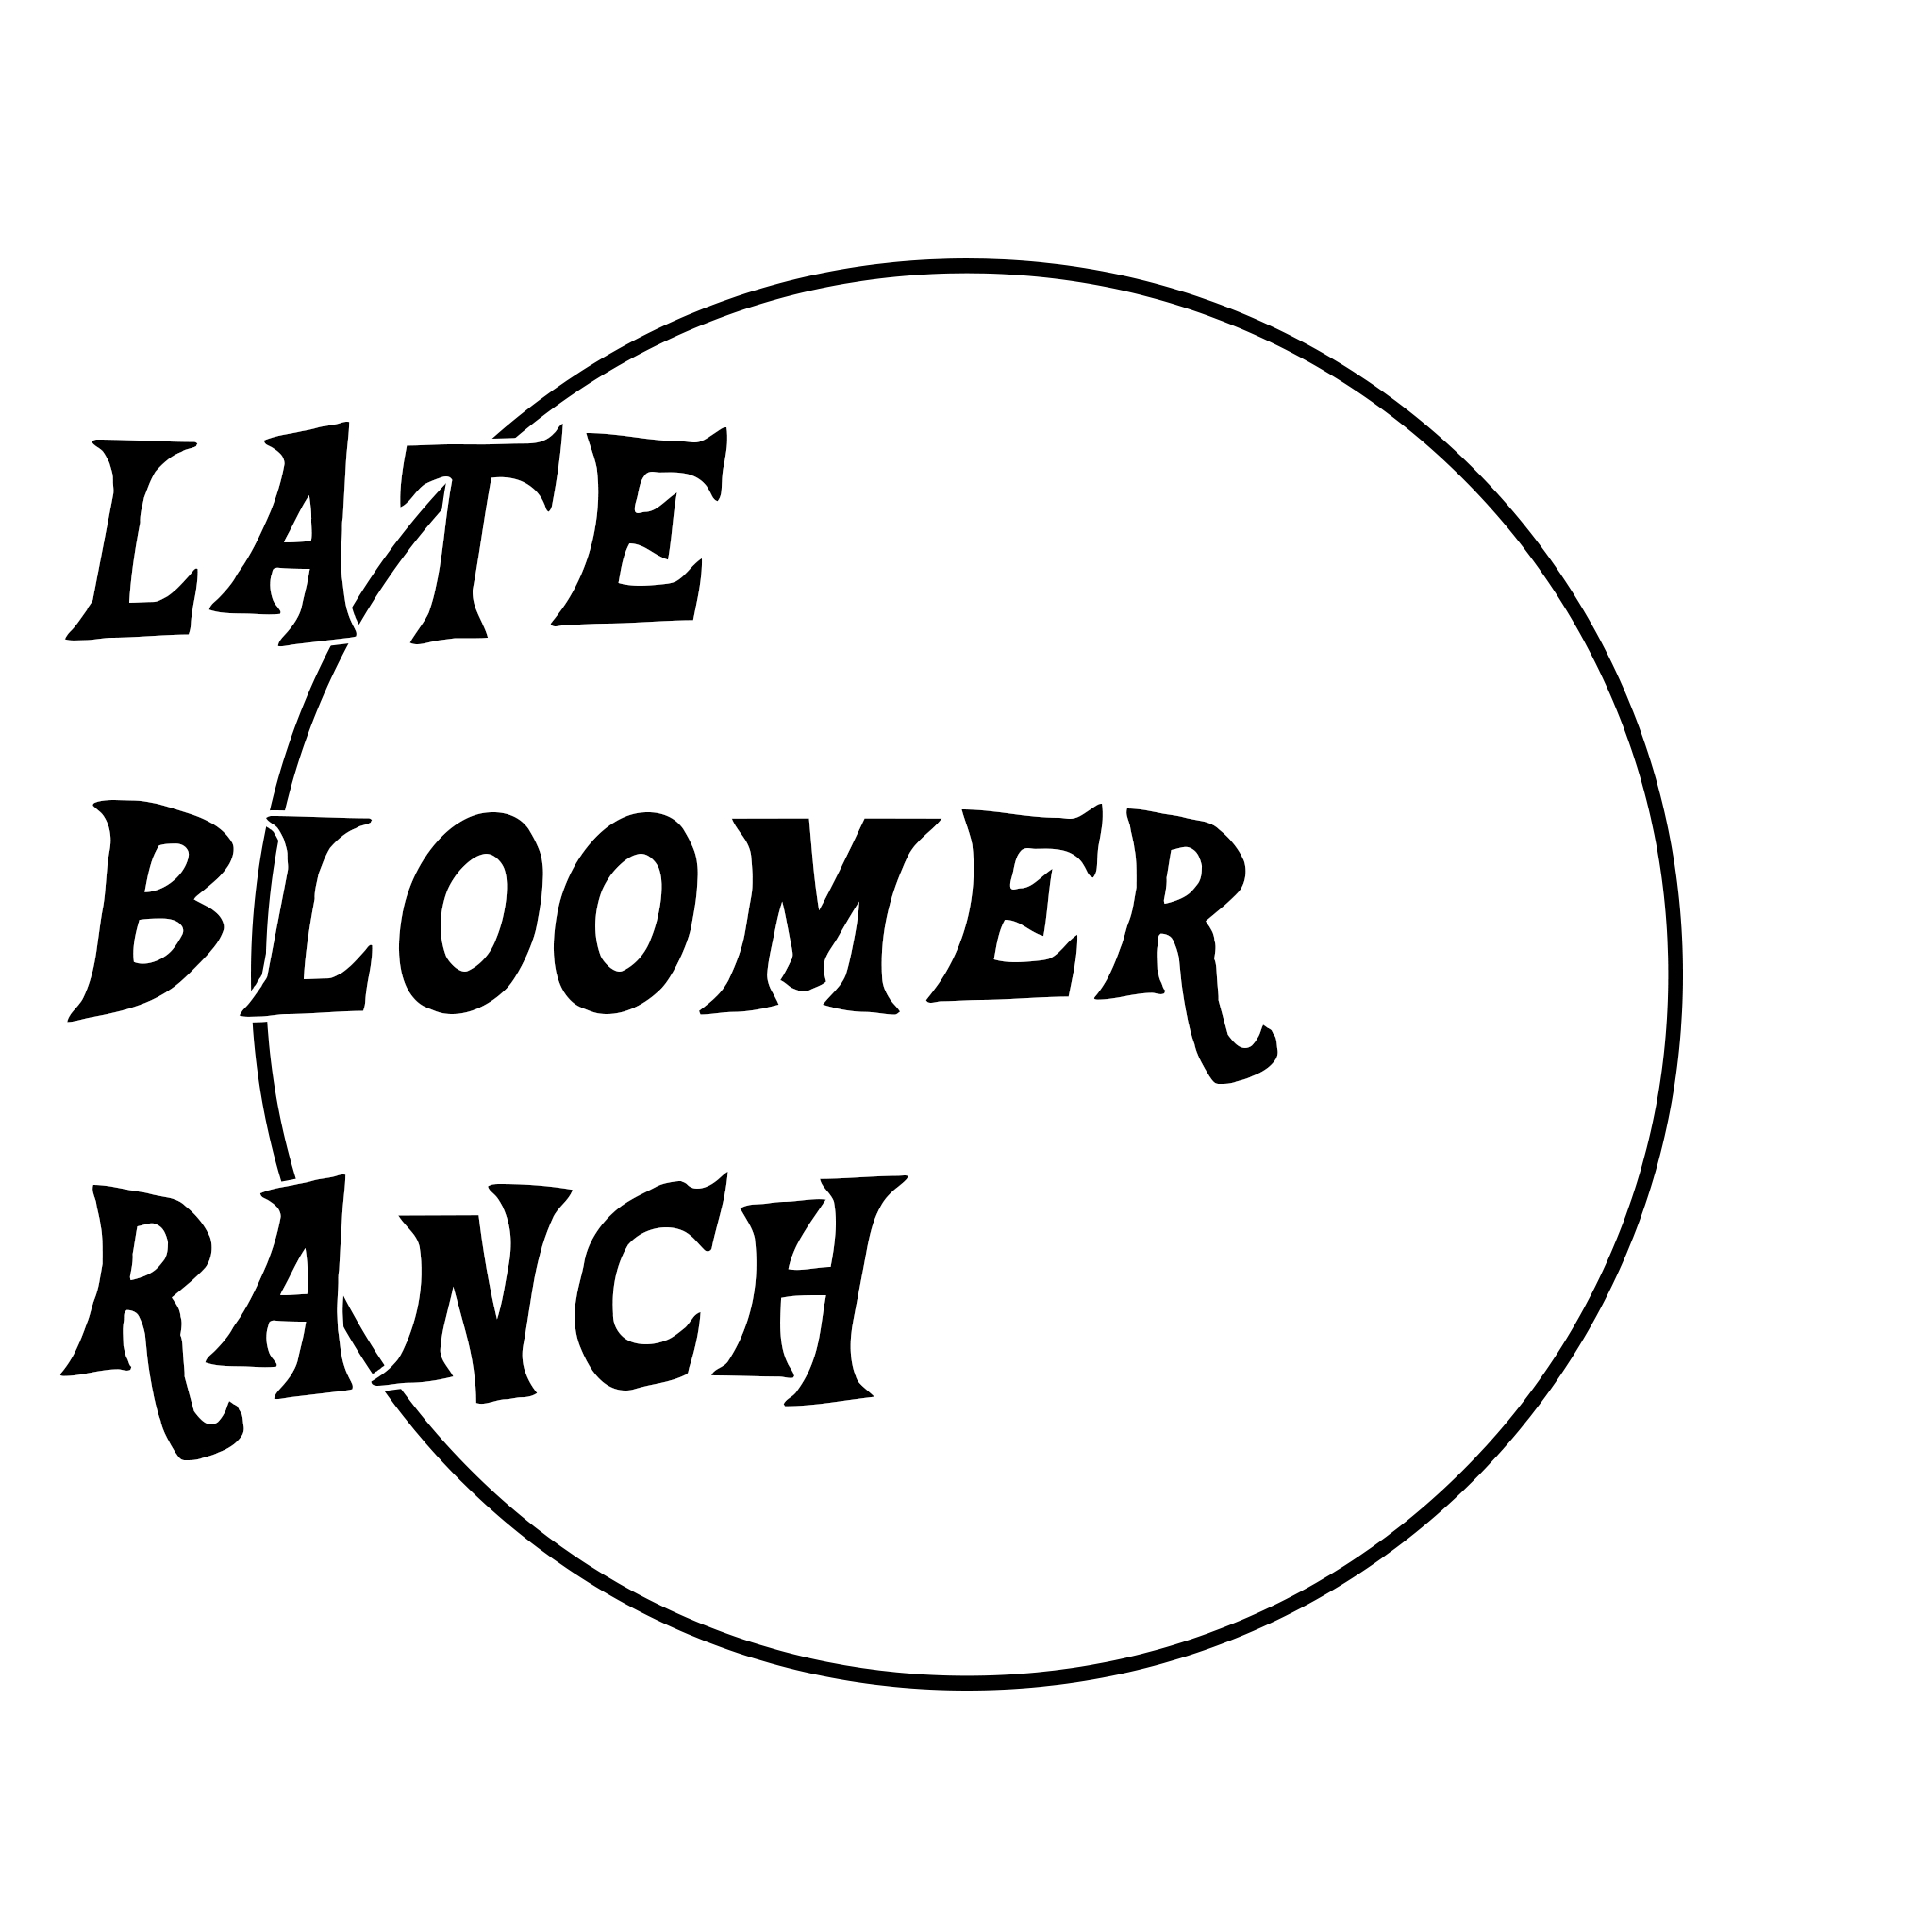 Late Bloomer Ranch